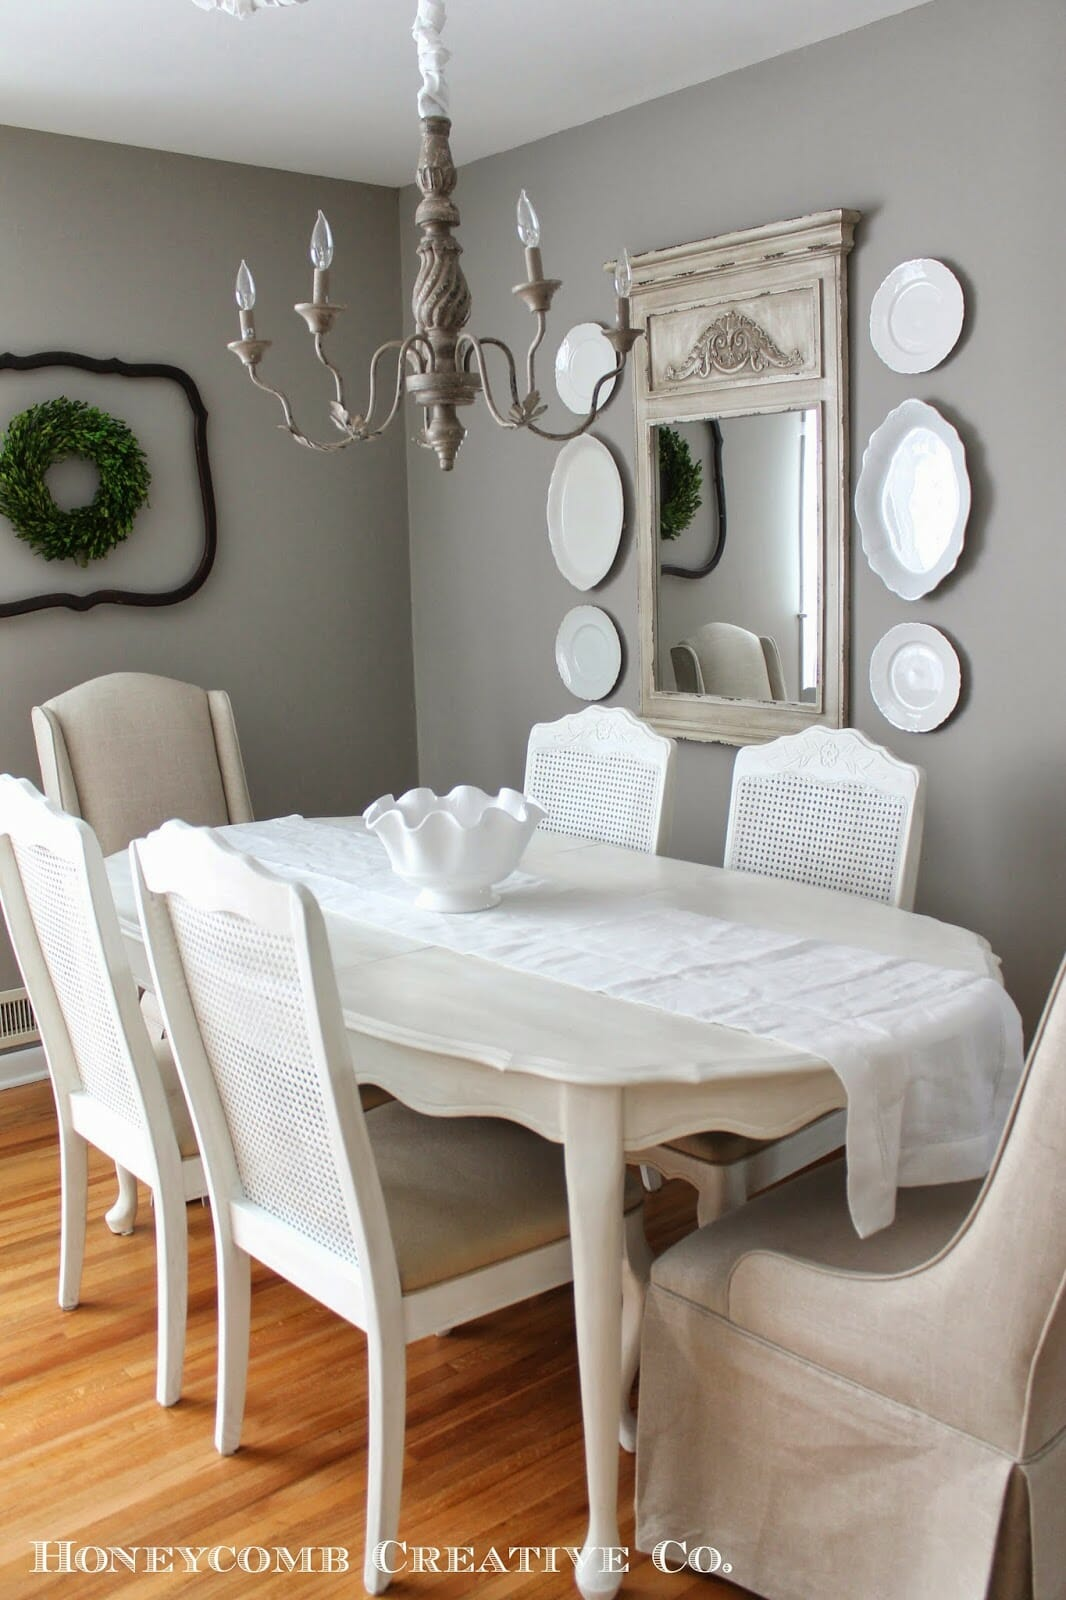 The Finishing Touch on the Dining Room